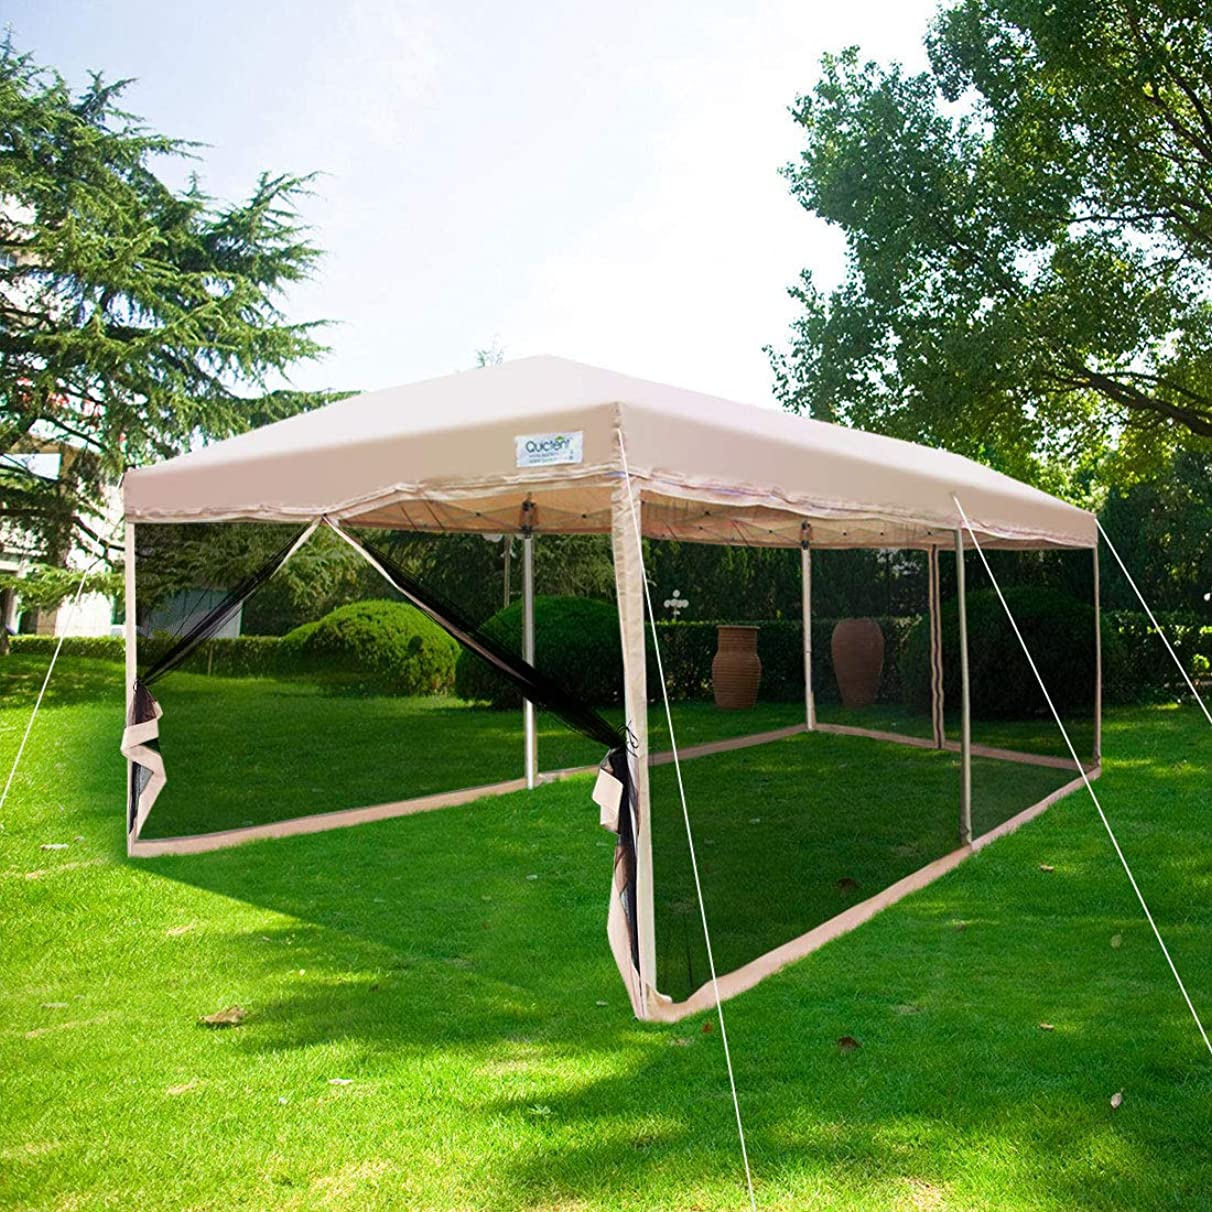 Quictent 10x20 Easy Pop up Canopy Tent Screen House with Netting Mesh Sides Walls(Tan)